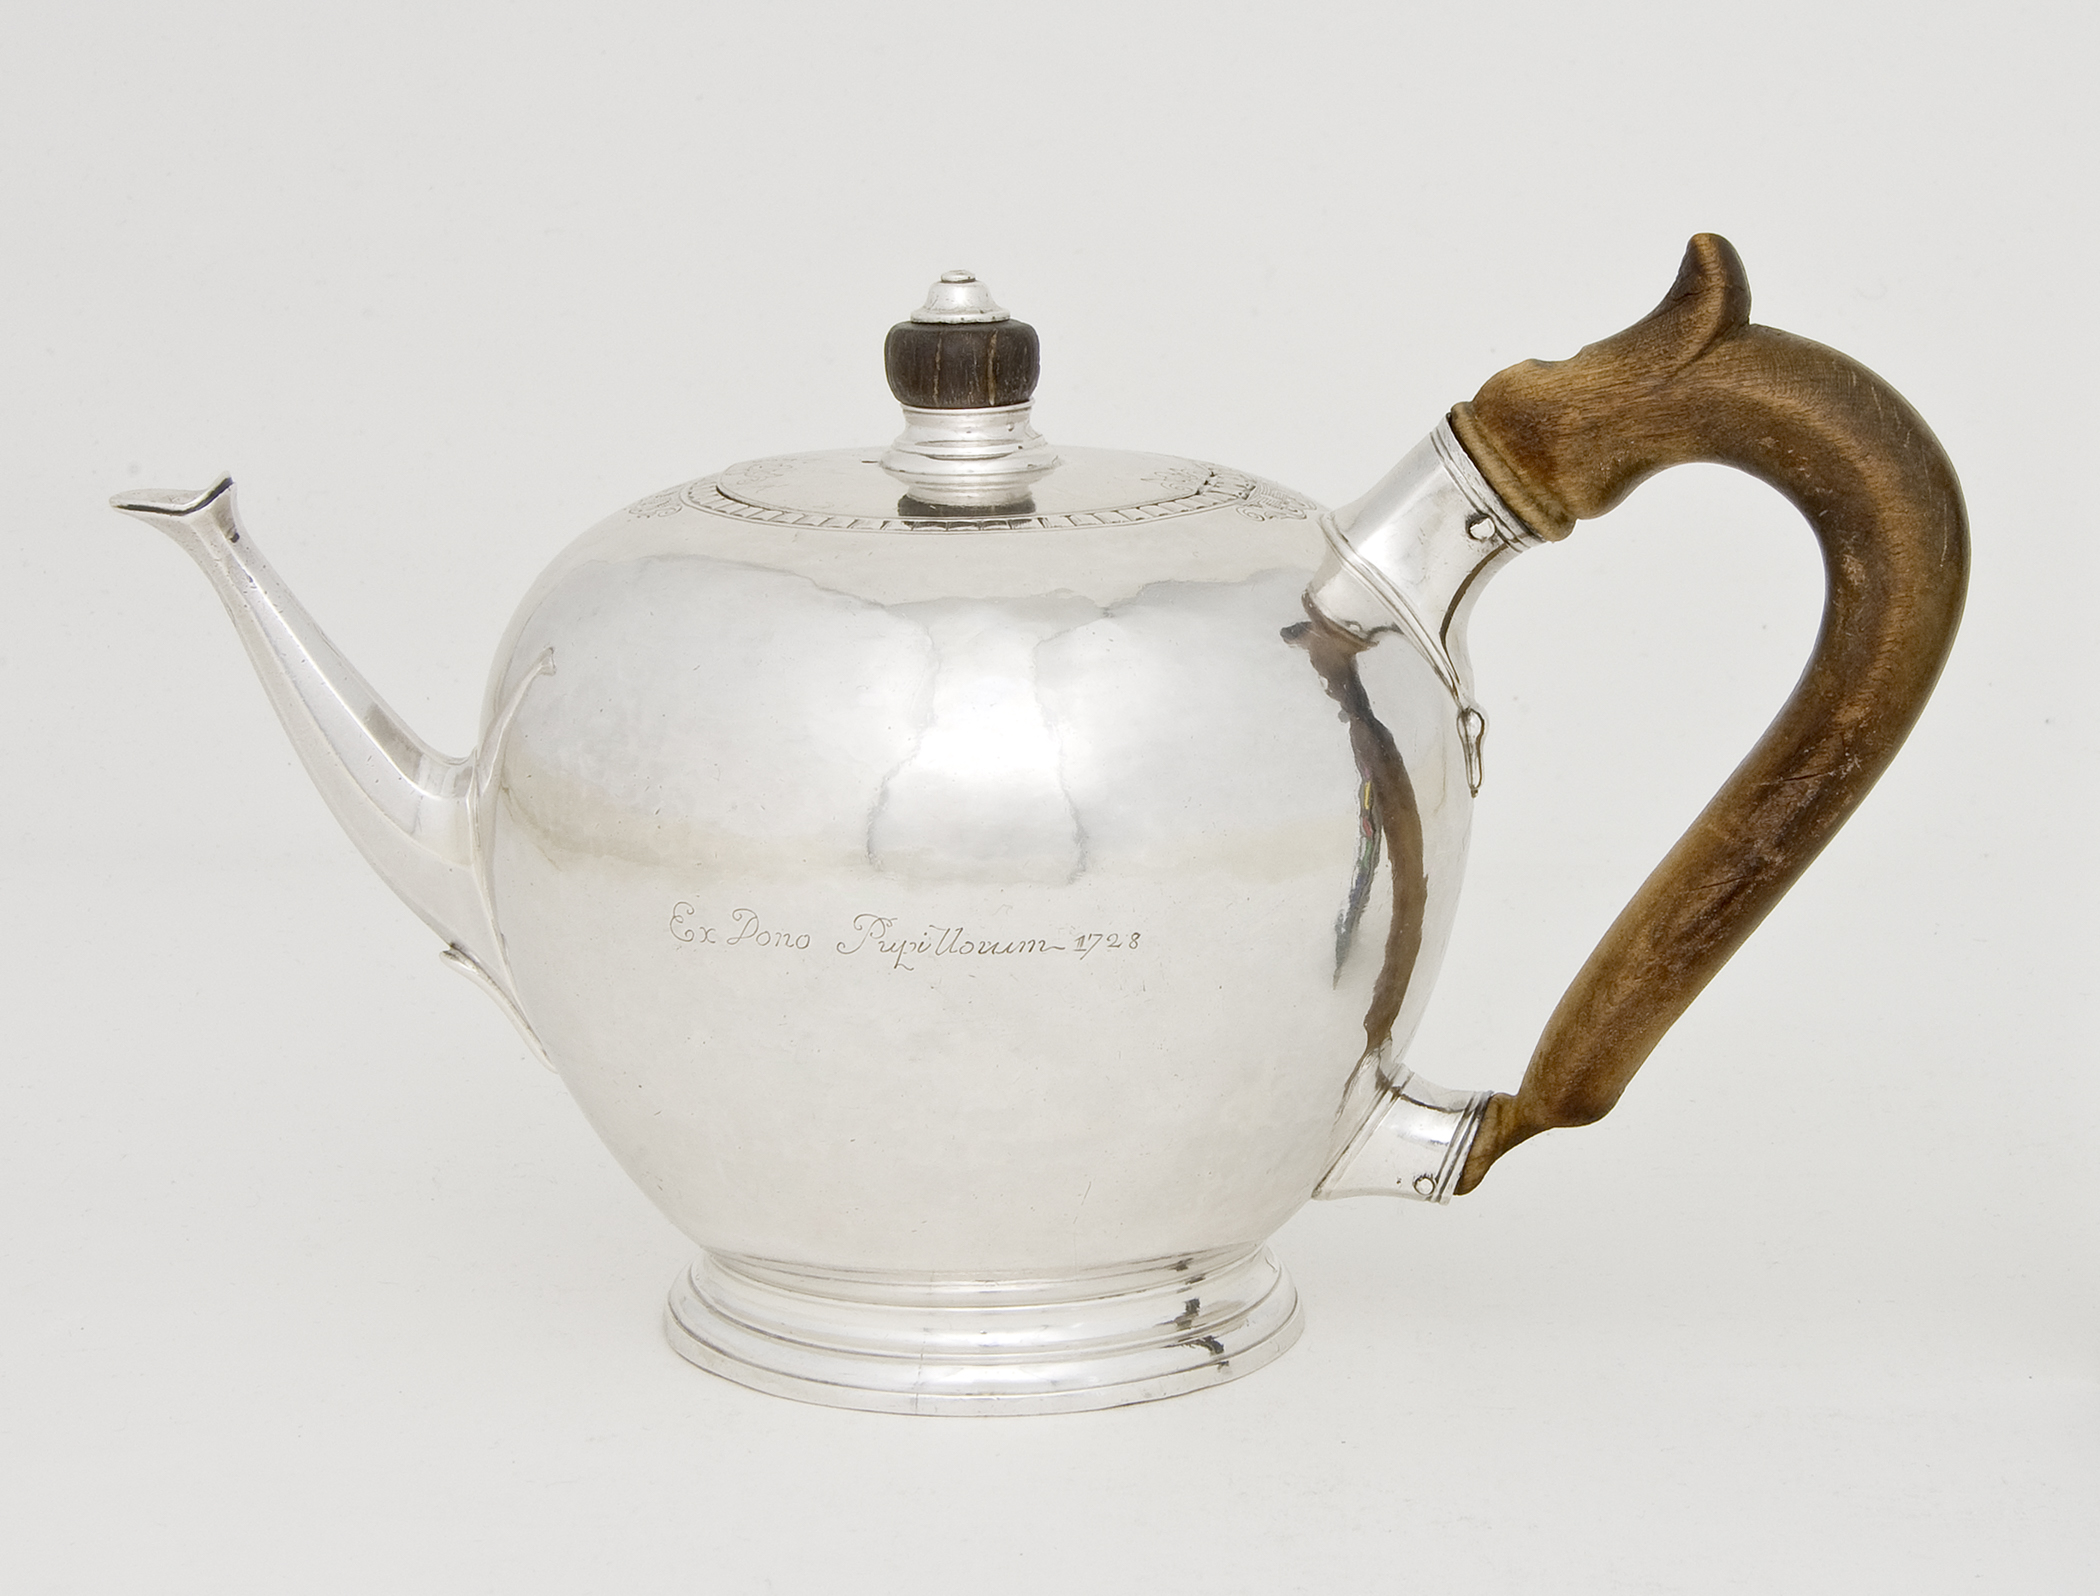 2016.0003 A, B Teapot, view 1, after conservation treatment, cropped